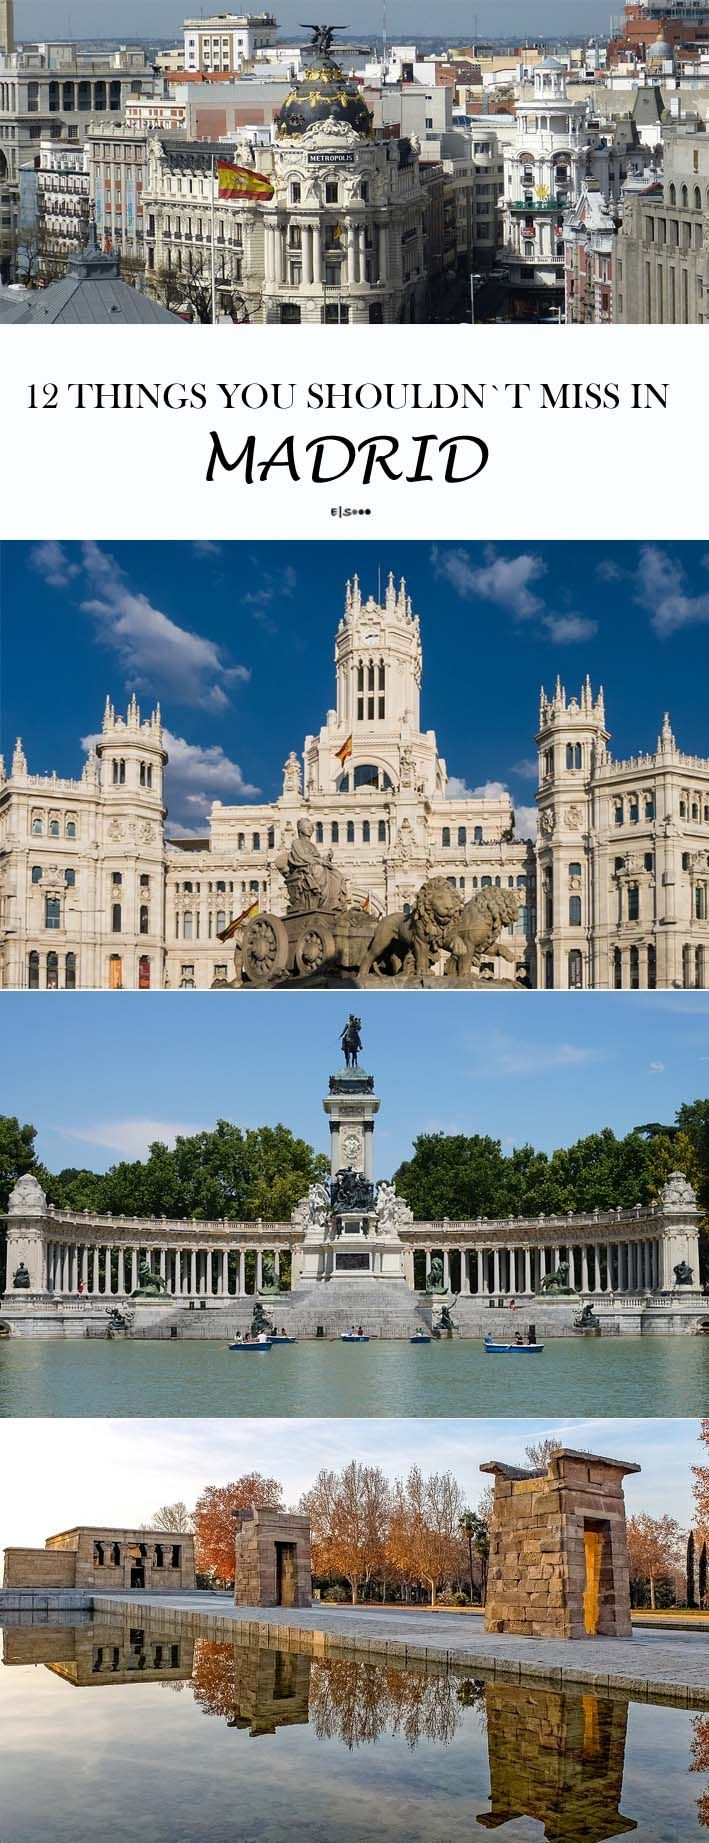 Things to see and do in Madrid, Spain.